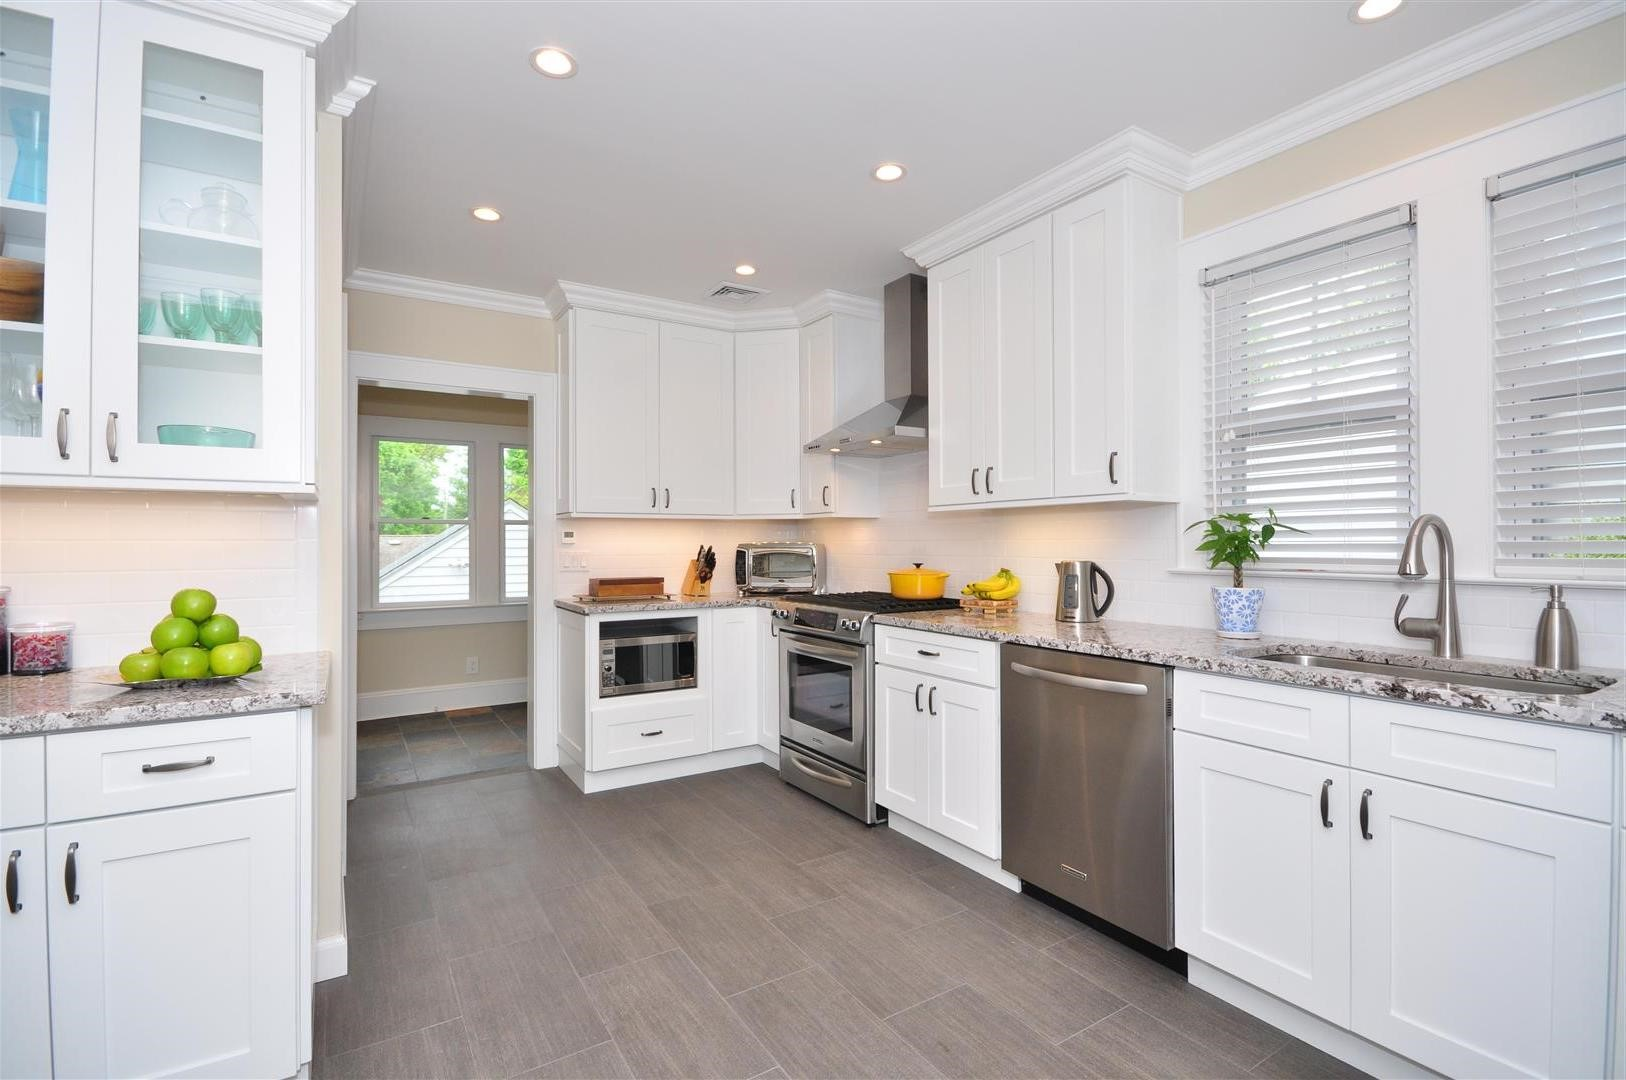 White Shaker Kitchen Cabinets Alluring White Shaker Kitchen Cabinets » Alba Kitchen Design Center Decorating Design